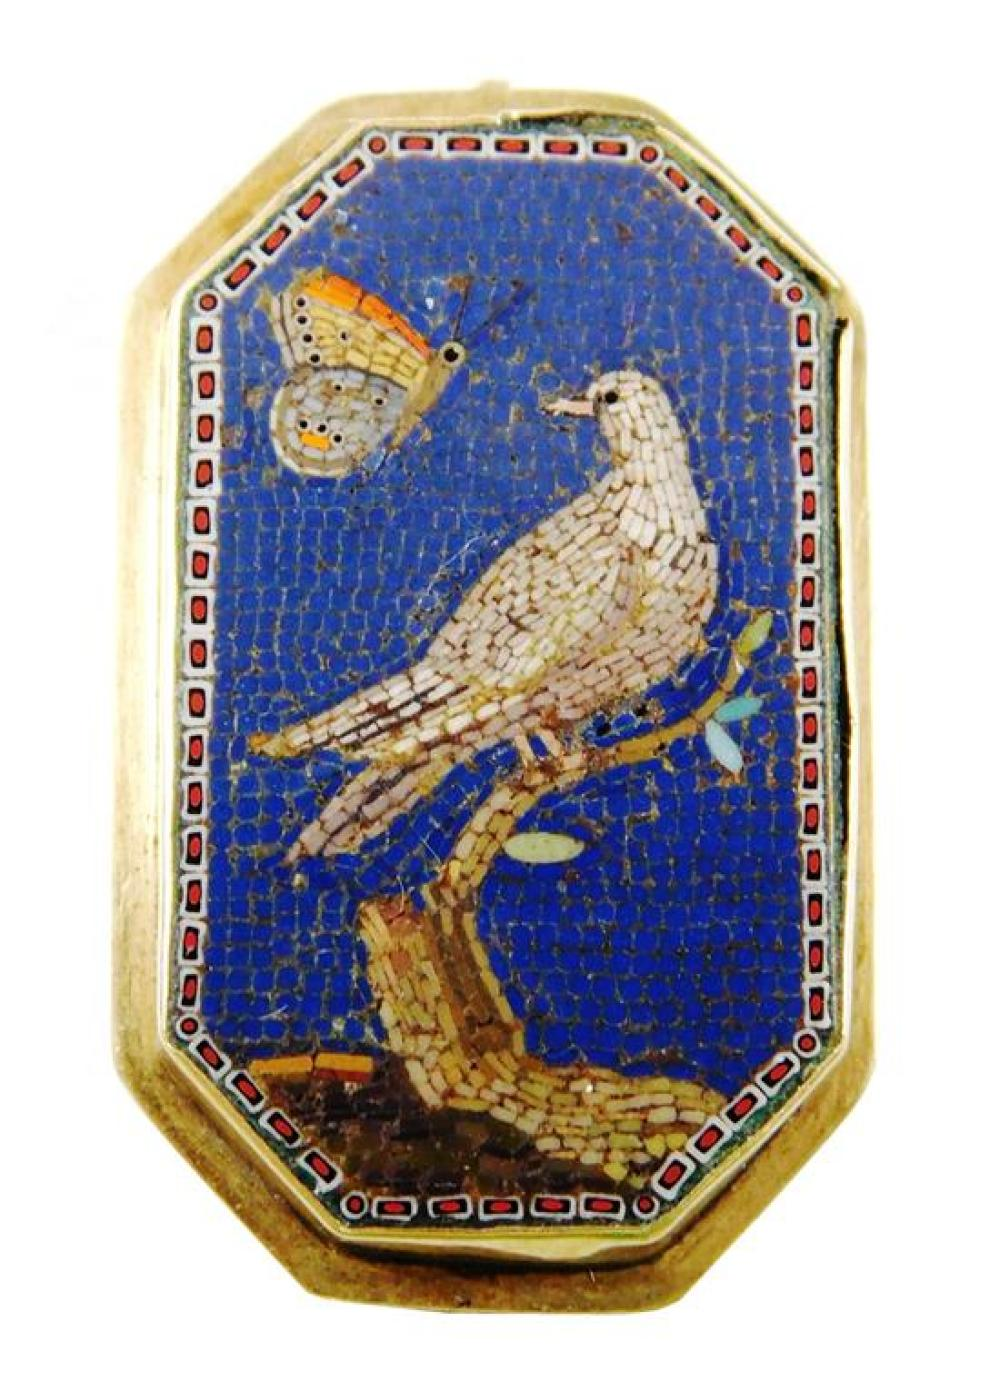 JEWELRY: 14K Giacomo Raffaelli Antique Dove Micromosaic Pin, early 19th C., octagonal shape frame tested 14K yellow gold, contains m...